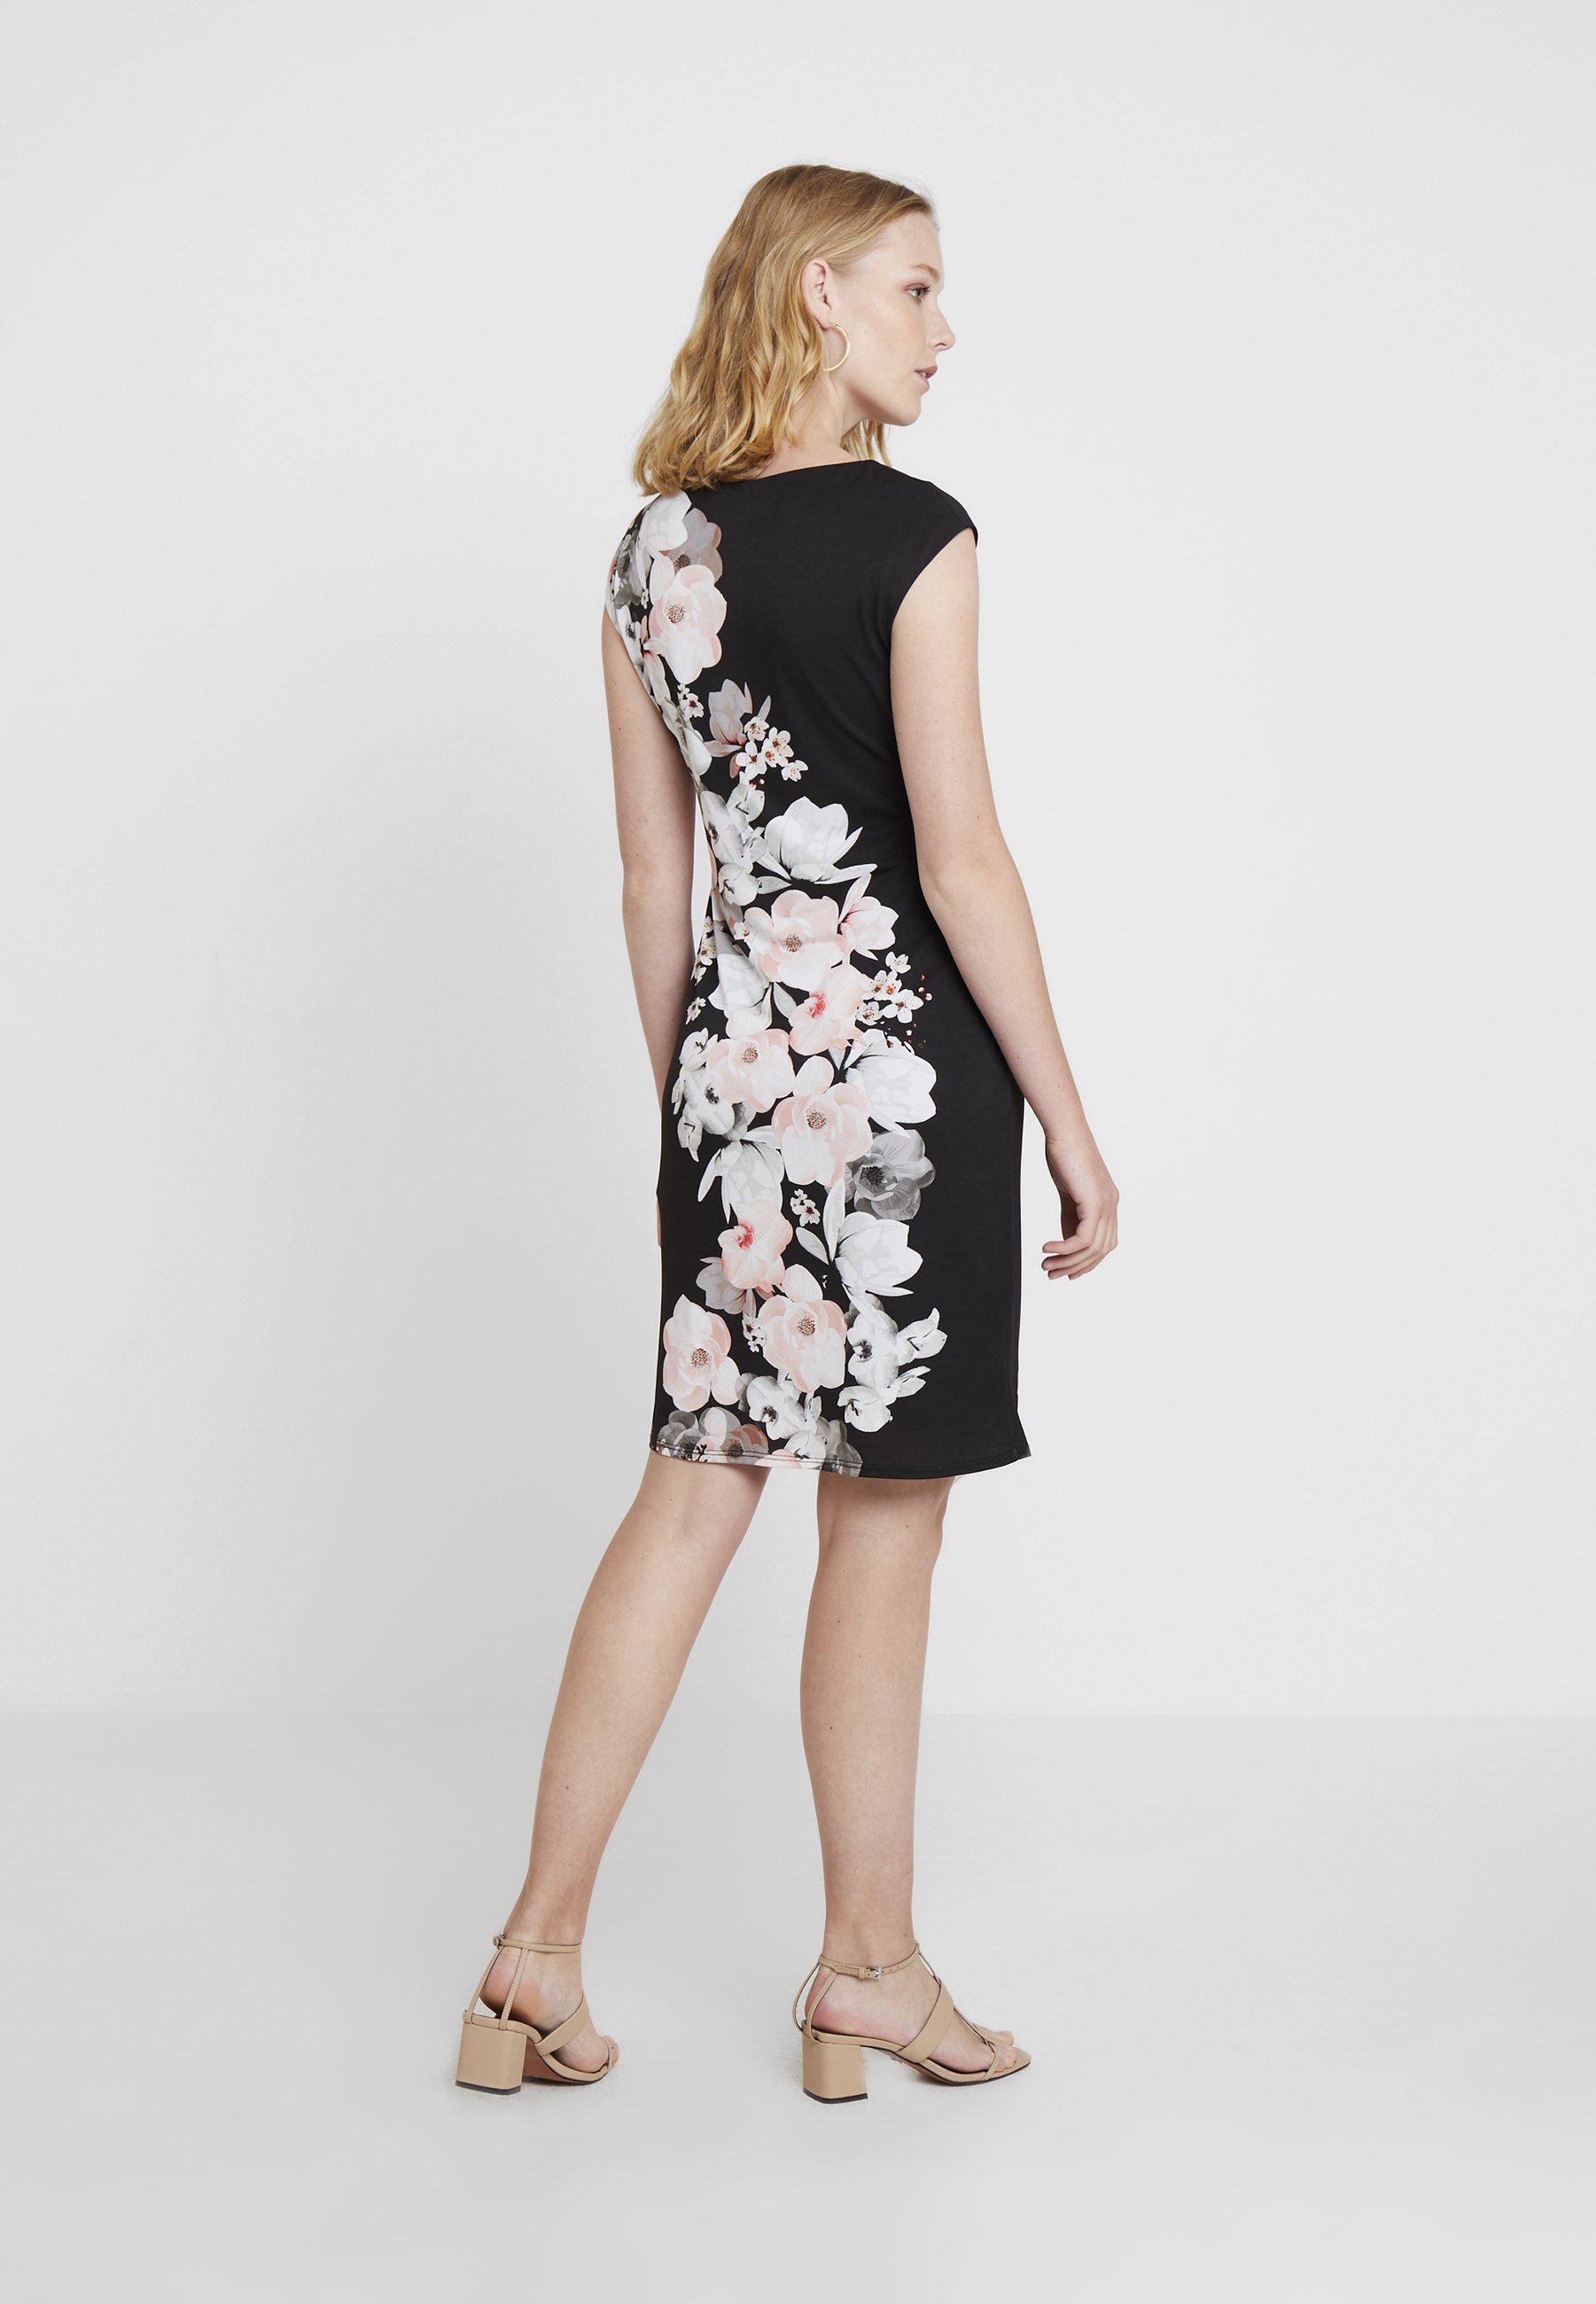 Geo Side Fourreau Floral DressRobe Black Ruche Wallis Ok0nw8P